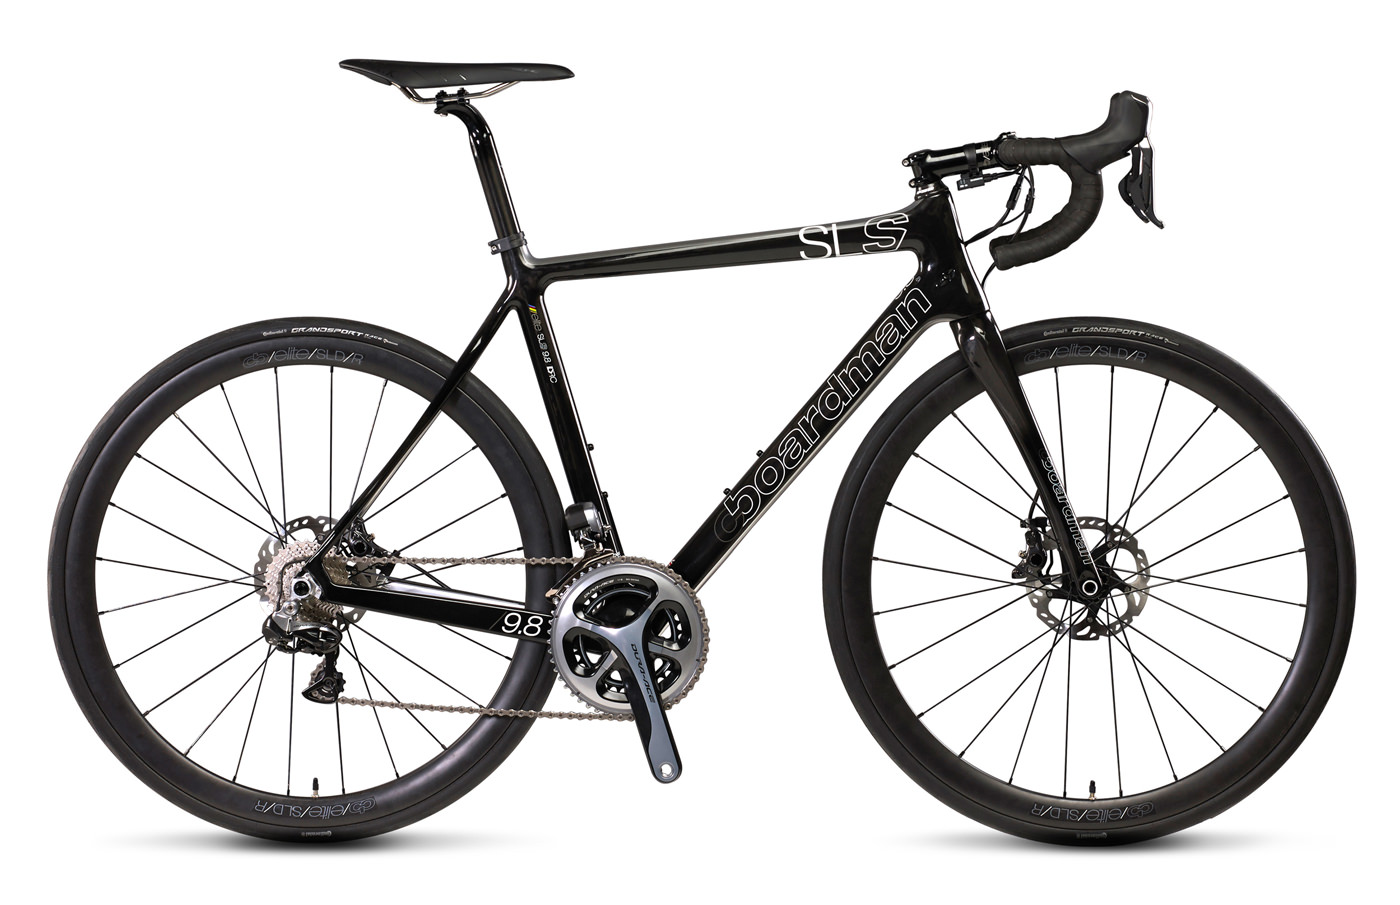 827-Boardman_SLS98Disc_xl